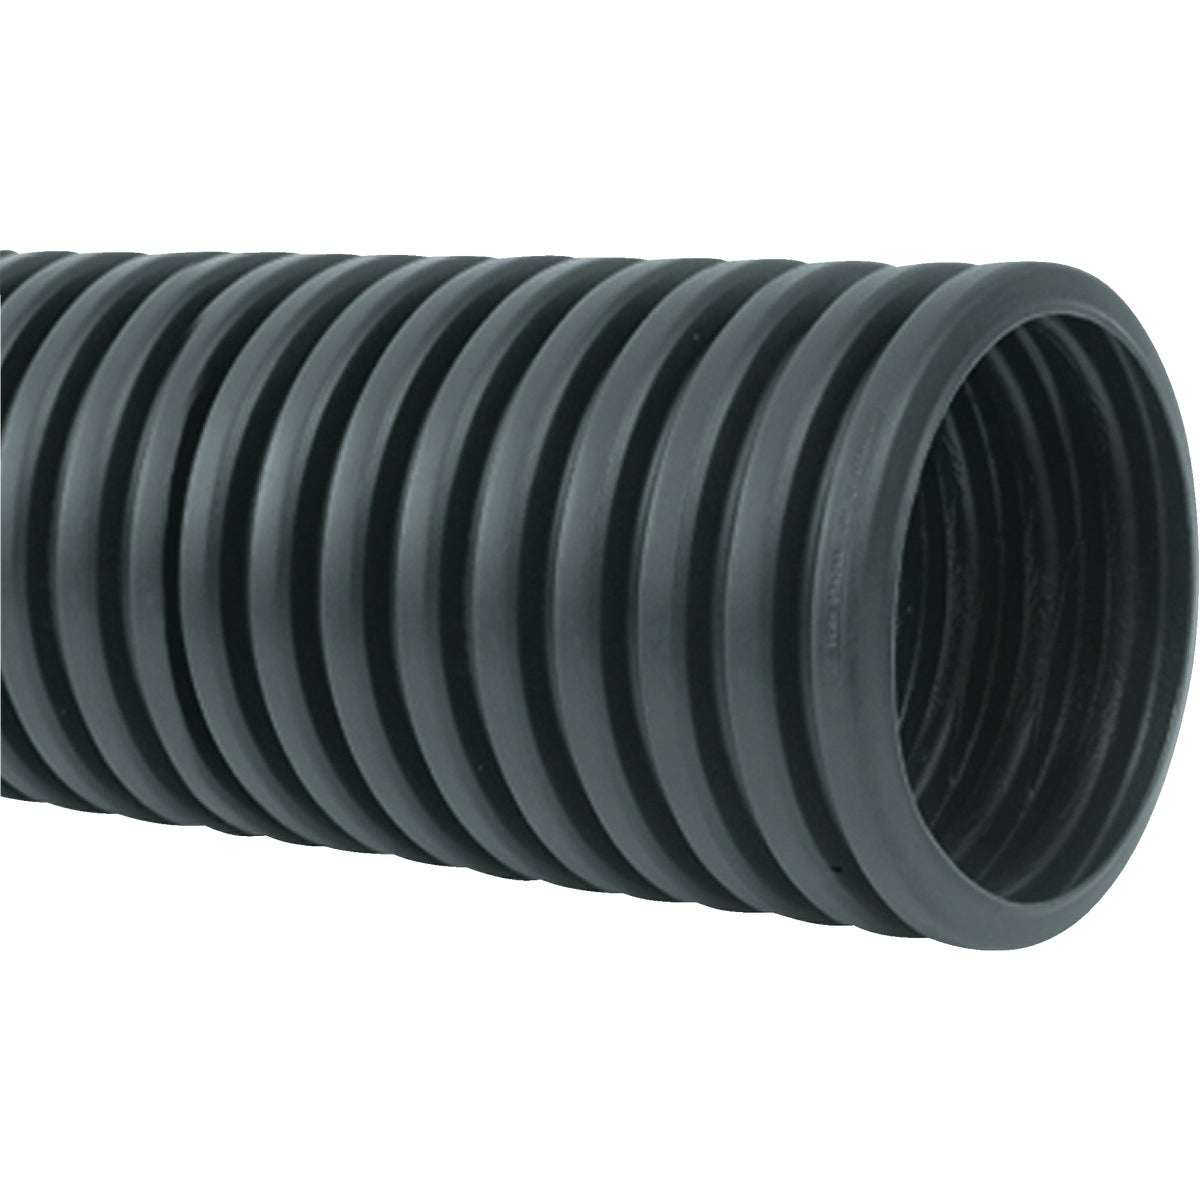 "4""X10' SOLID PIPE - 454-010 by Advanced Drainage Sy"